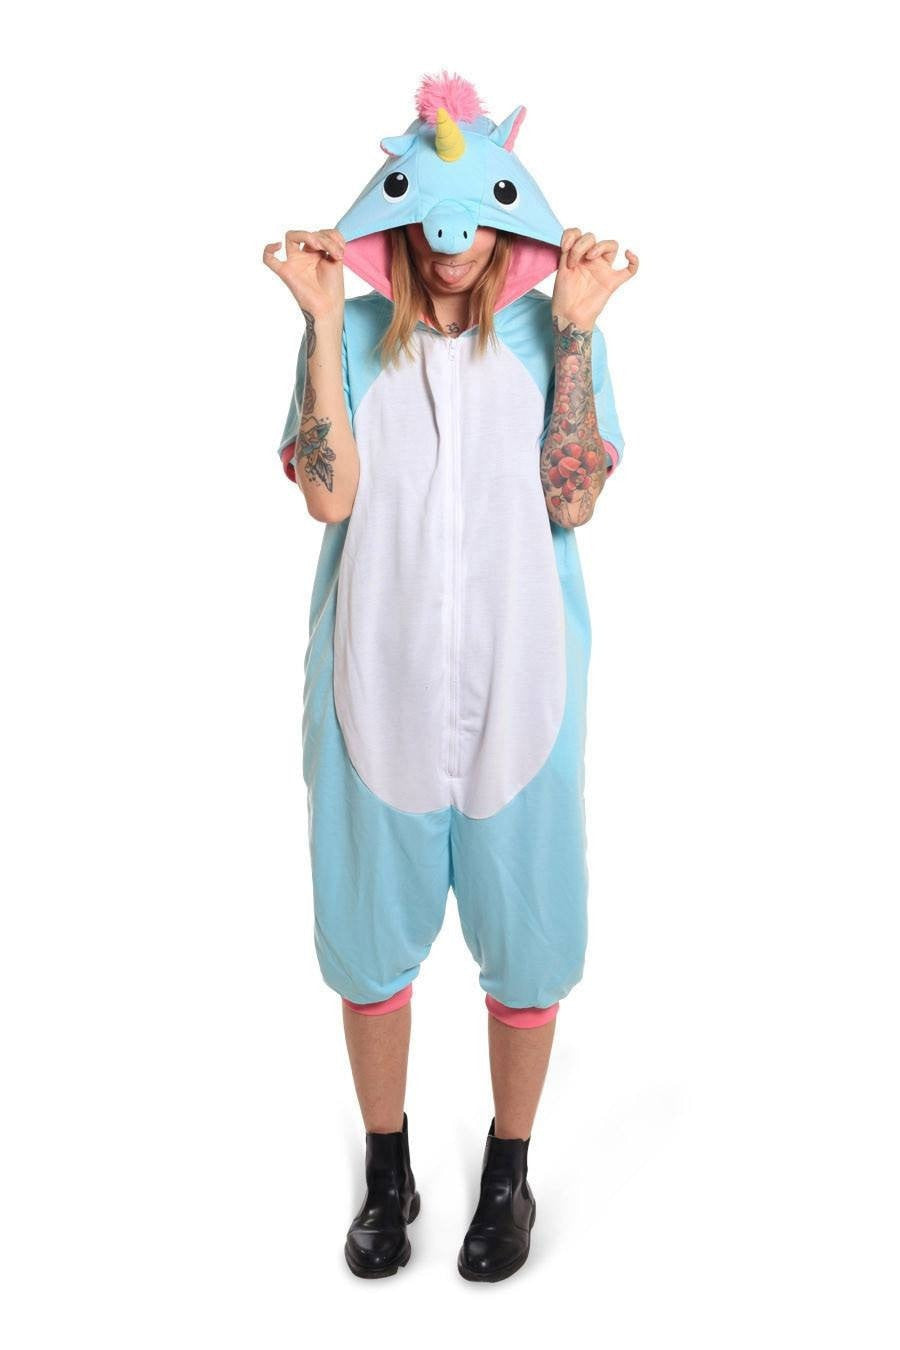 Blue Unicorn Short-Sleeved Kigurumi Onesie Sazac